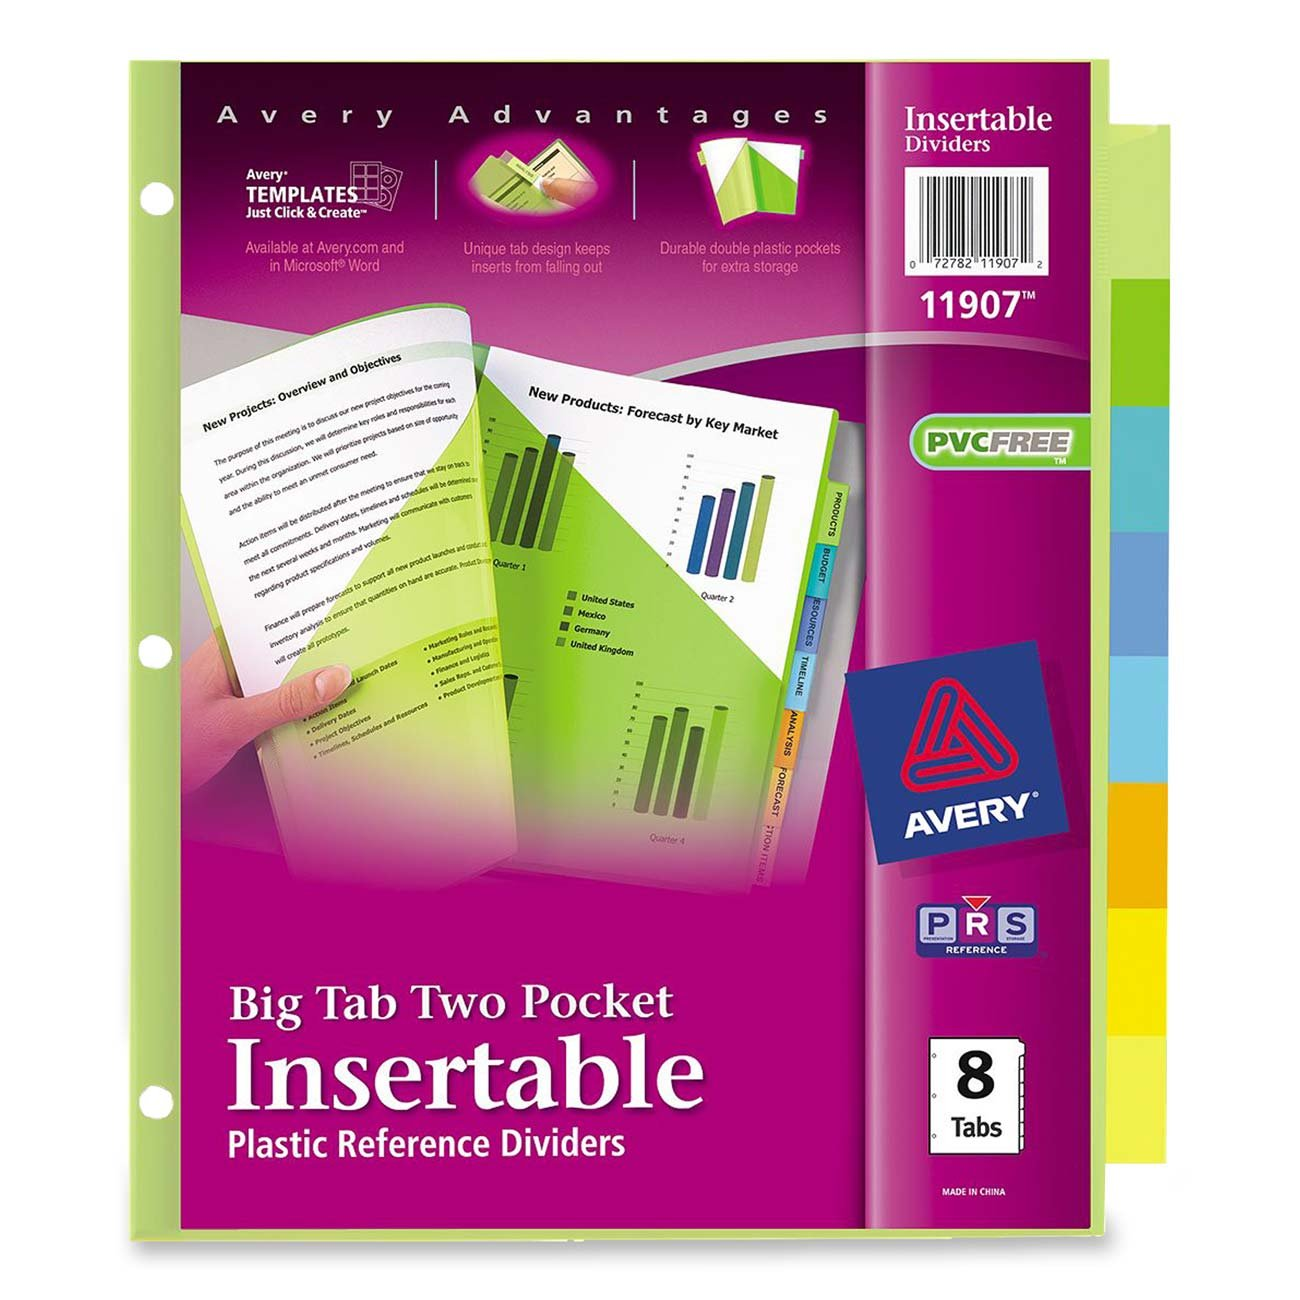 Amazon Avery Big Tab Two Pocket Insertable Plastic Dividers 8